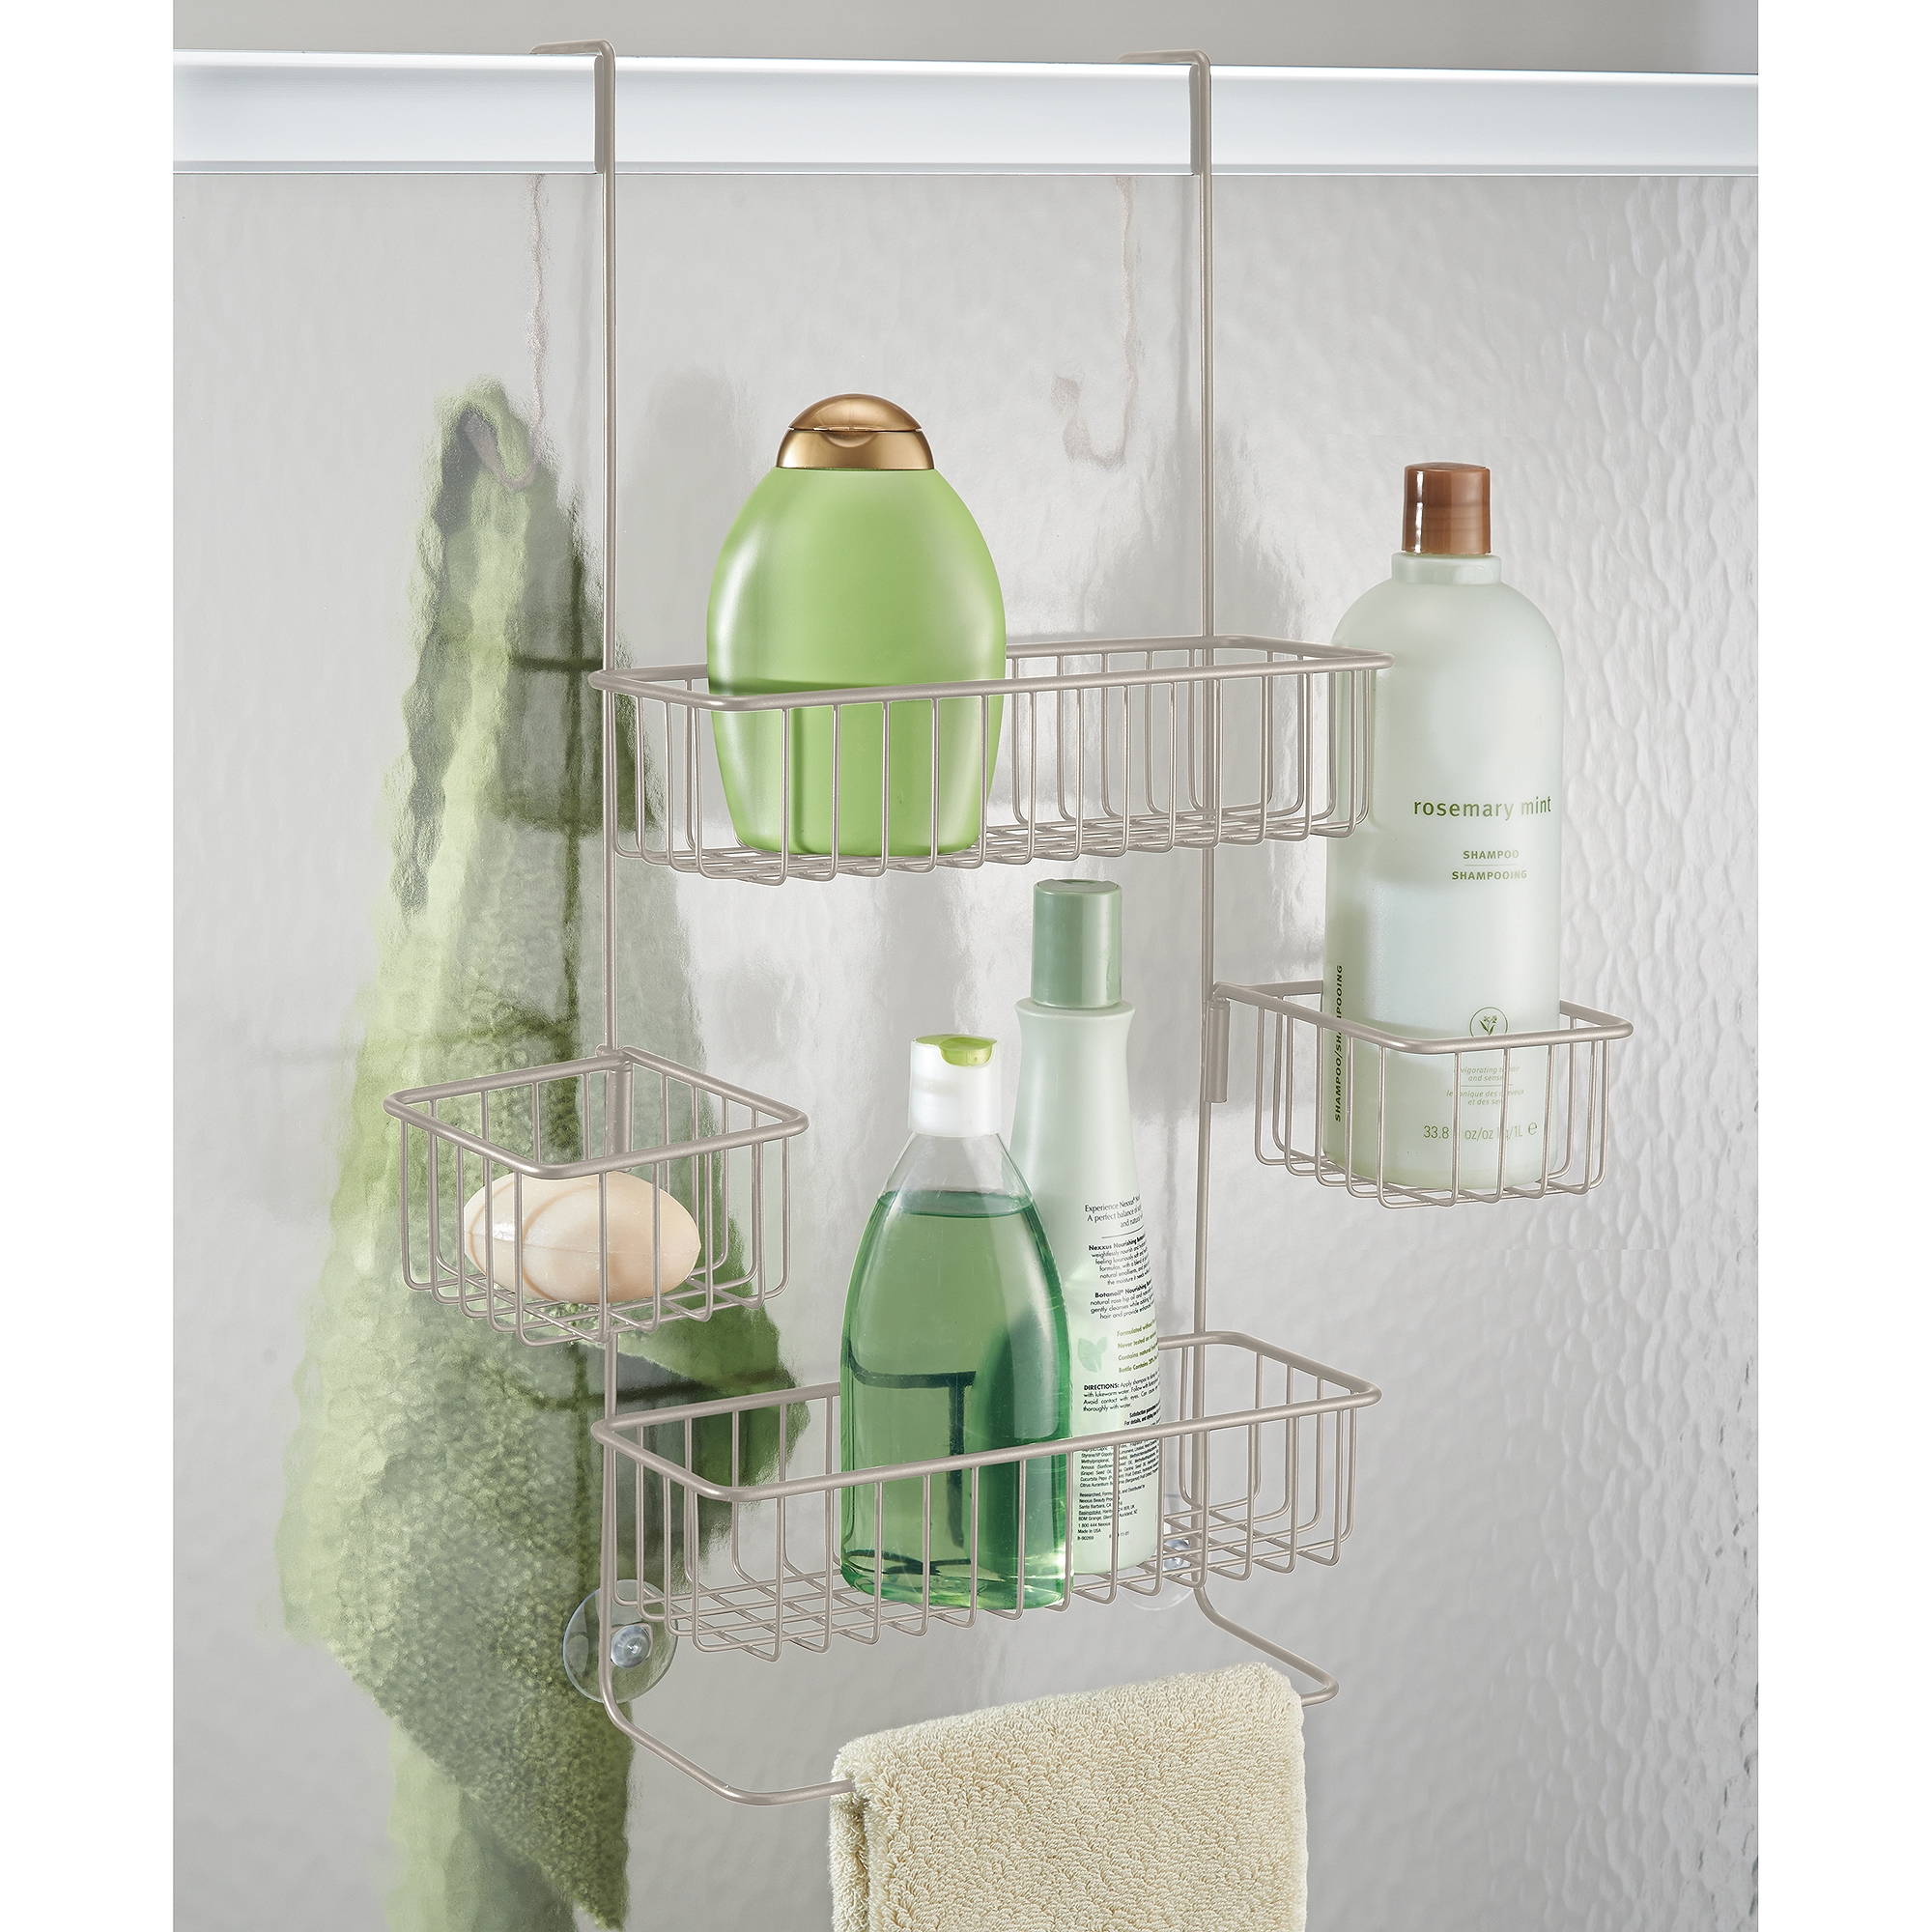 Permalink to Shower Door Shampoo Holder